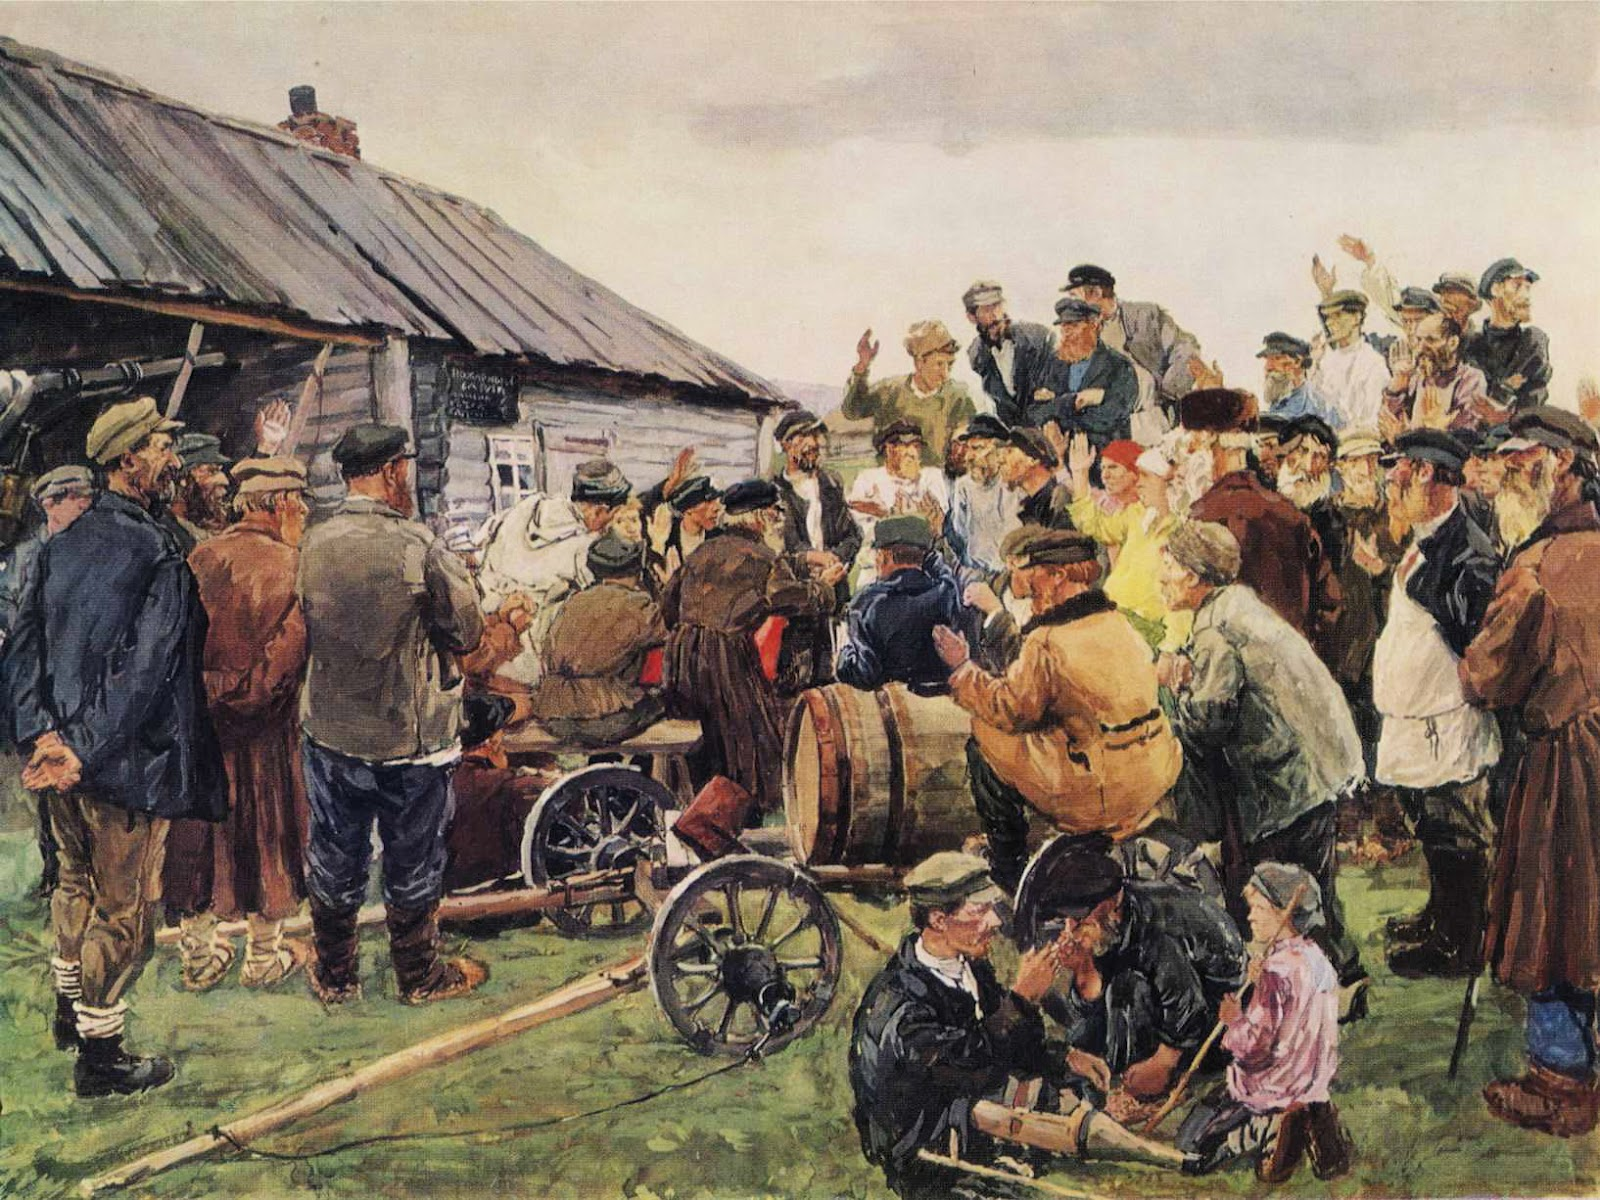 arkady-plastov-elections-to-the-committee-of-poor-peasants